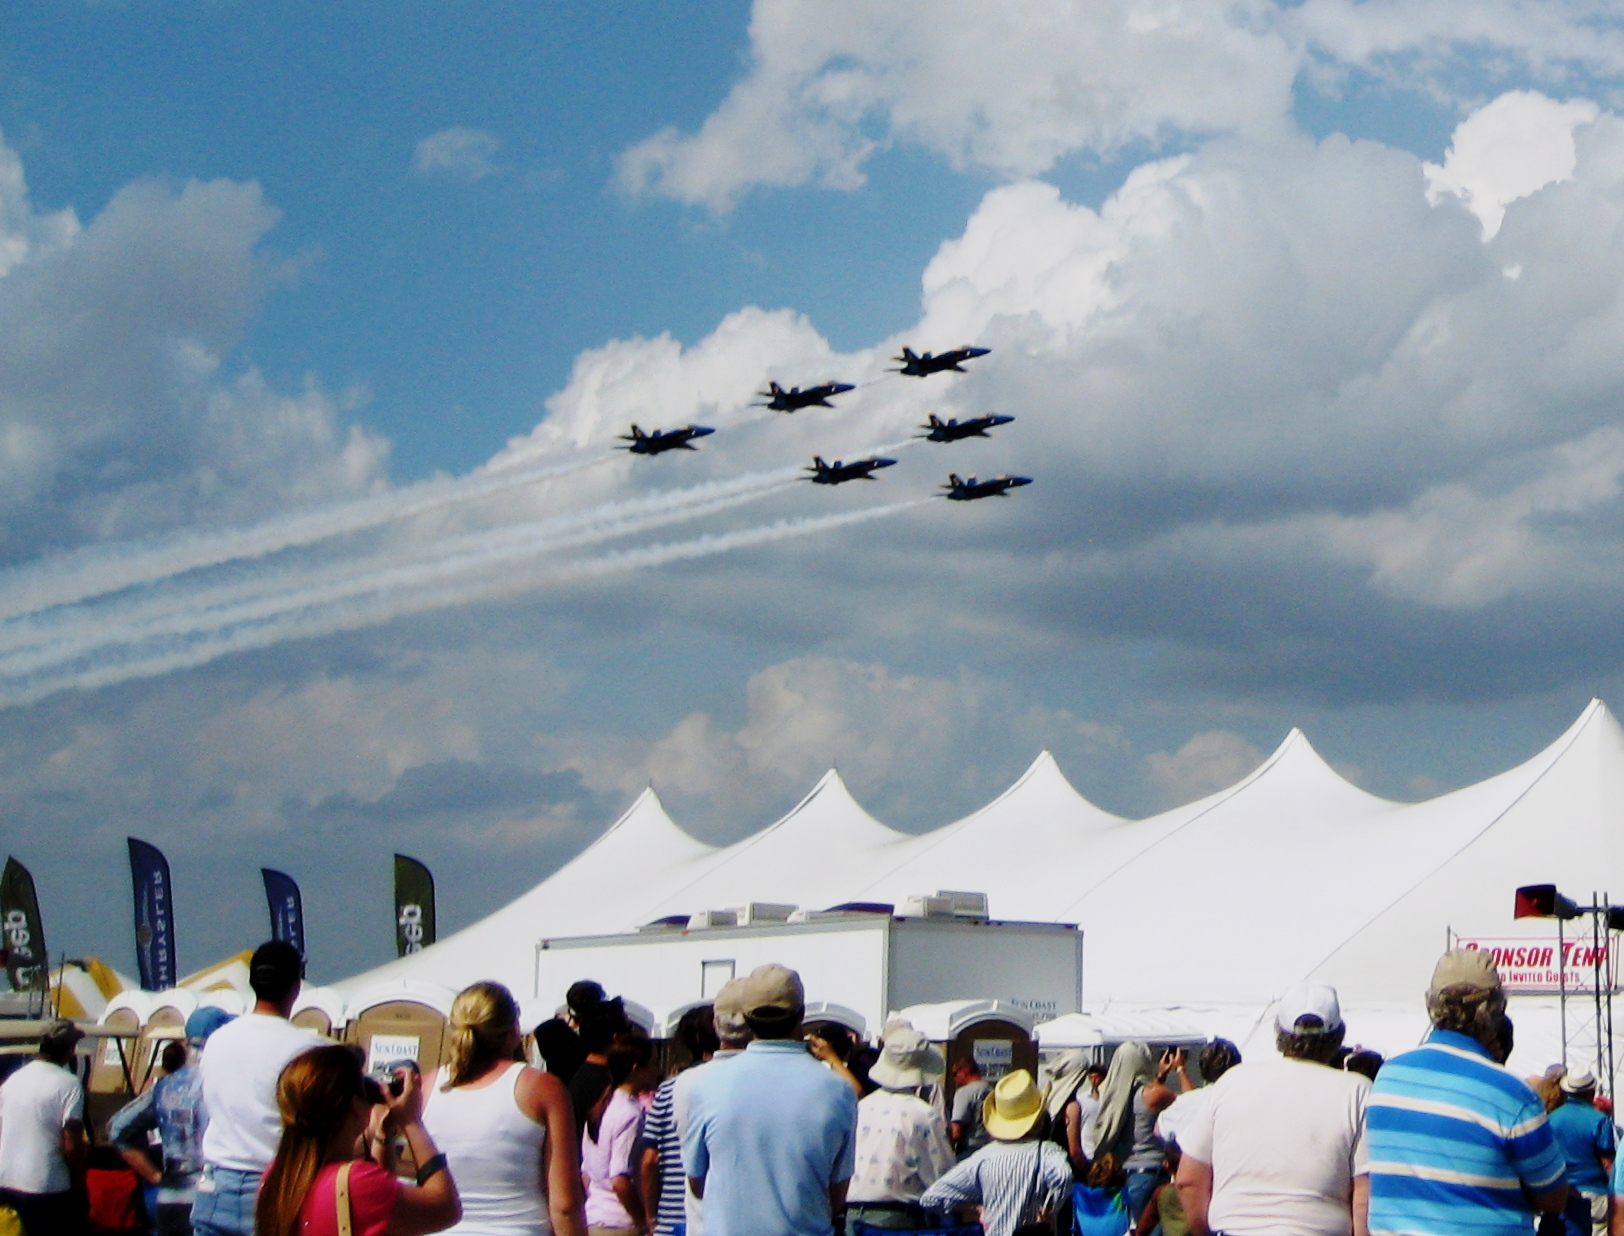 Blue Angels to Headline 2012 Florida International Air Show in Punta Gorda, March 24 – 25